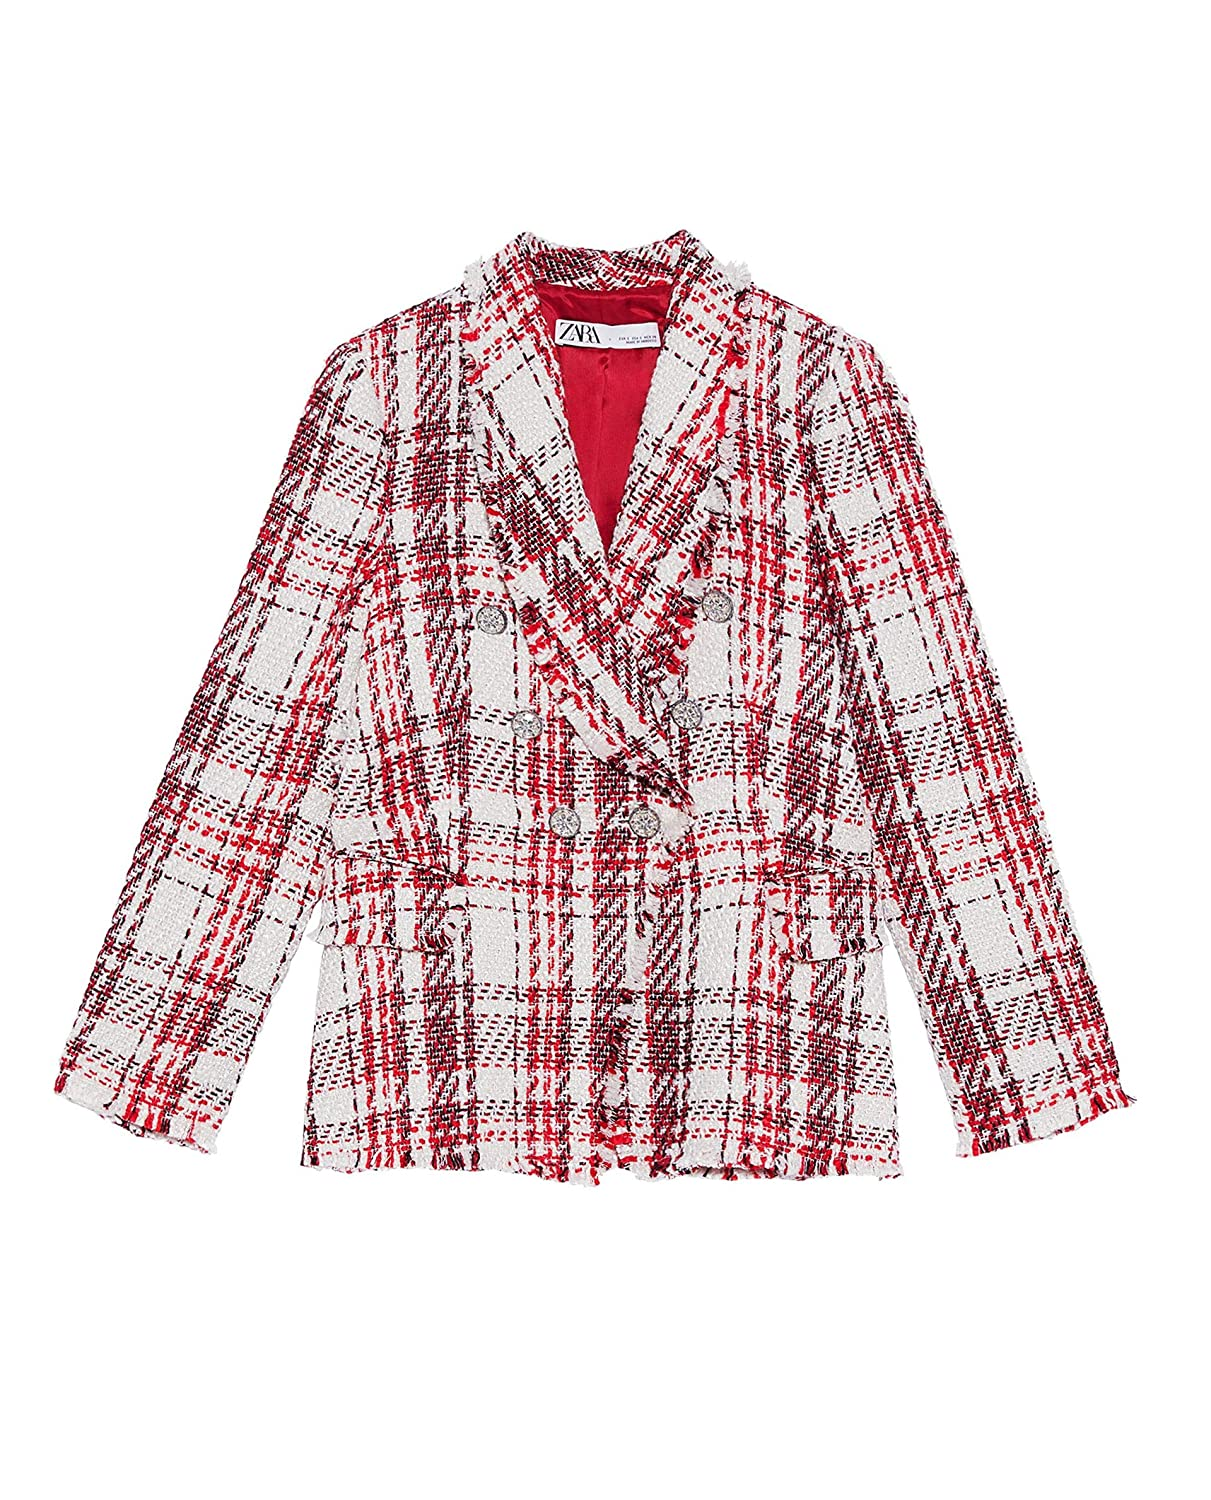 41cc4253 Zara Women's Tweed Jacket with gem Button 2135/614: Amazon.co.uk: Clothing